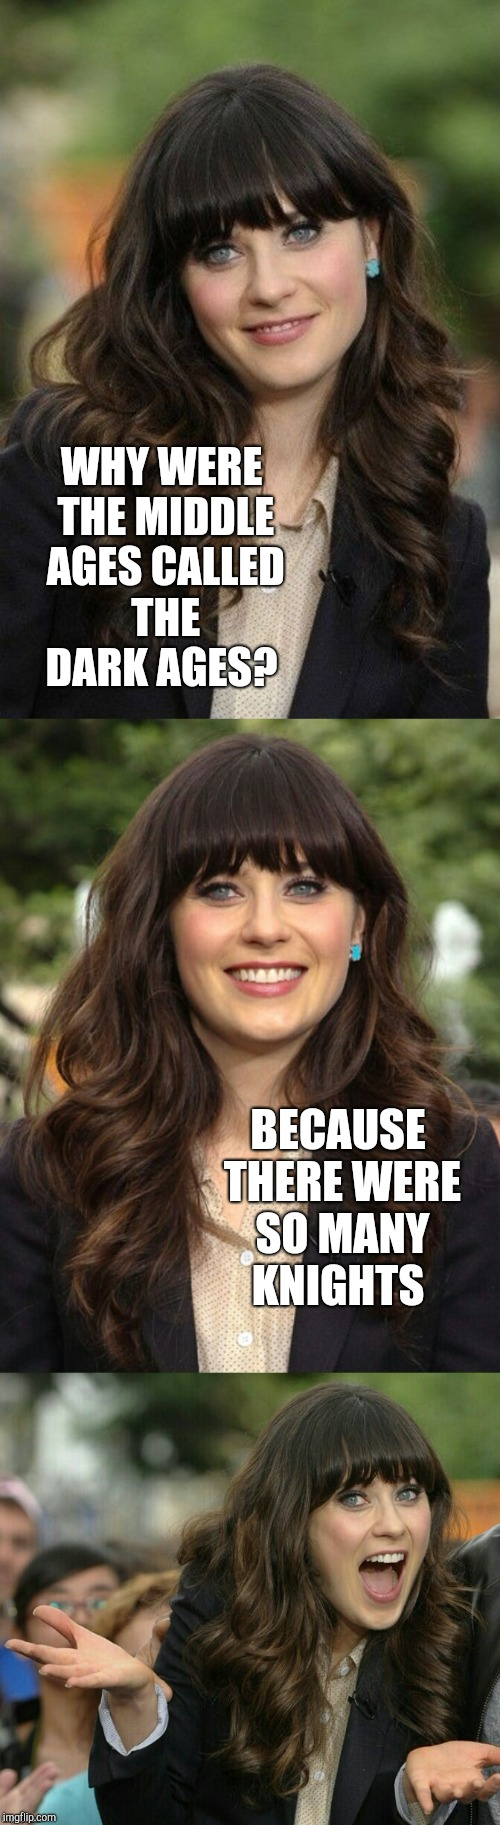 WHY WERE THE MIDDLE AGES CALLED THE DARK AGES? BECAUSE THERE WERE SO MANY KNIGHTS | image tagged in zooey deschanel joke template | made w/ Imgflip meme maker